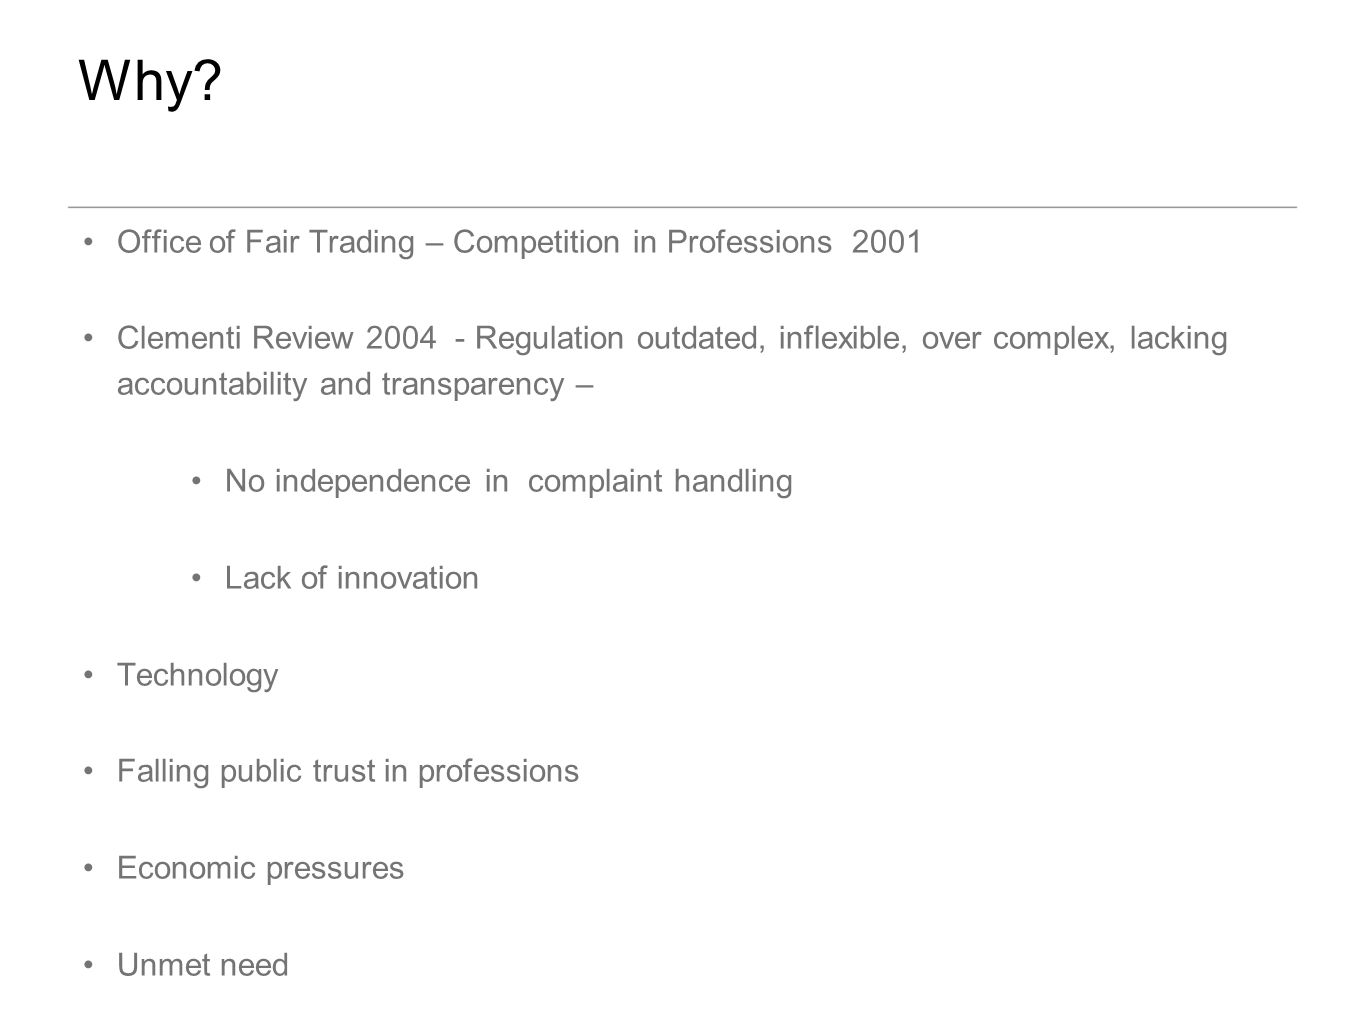 Office of Fair Trading – Competition in Professions 2001 Clementi Review 2004 - Regulation outdated, inflexible, over complex, lacking accountability and transparency – No independence in complaint handling Lack of innovation Technology Falling public trust in professions Economic pressures Unmet need